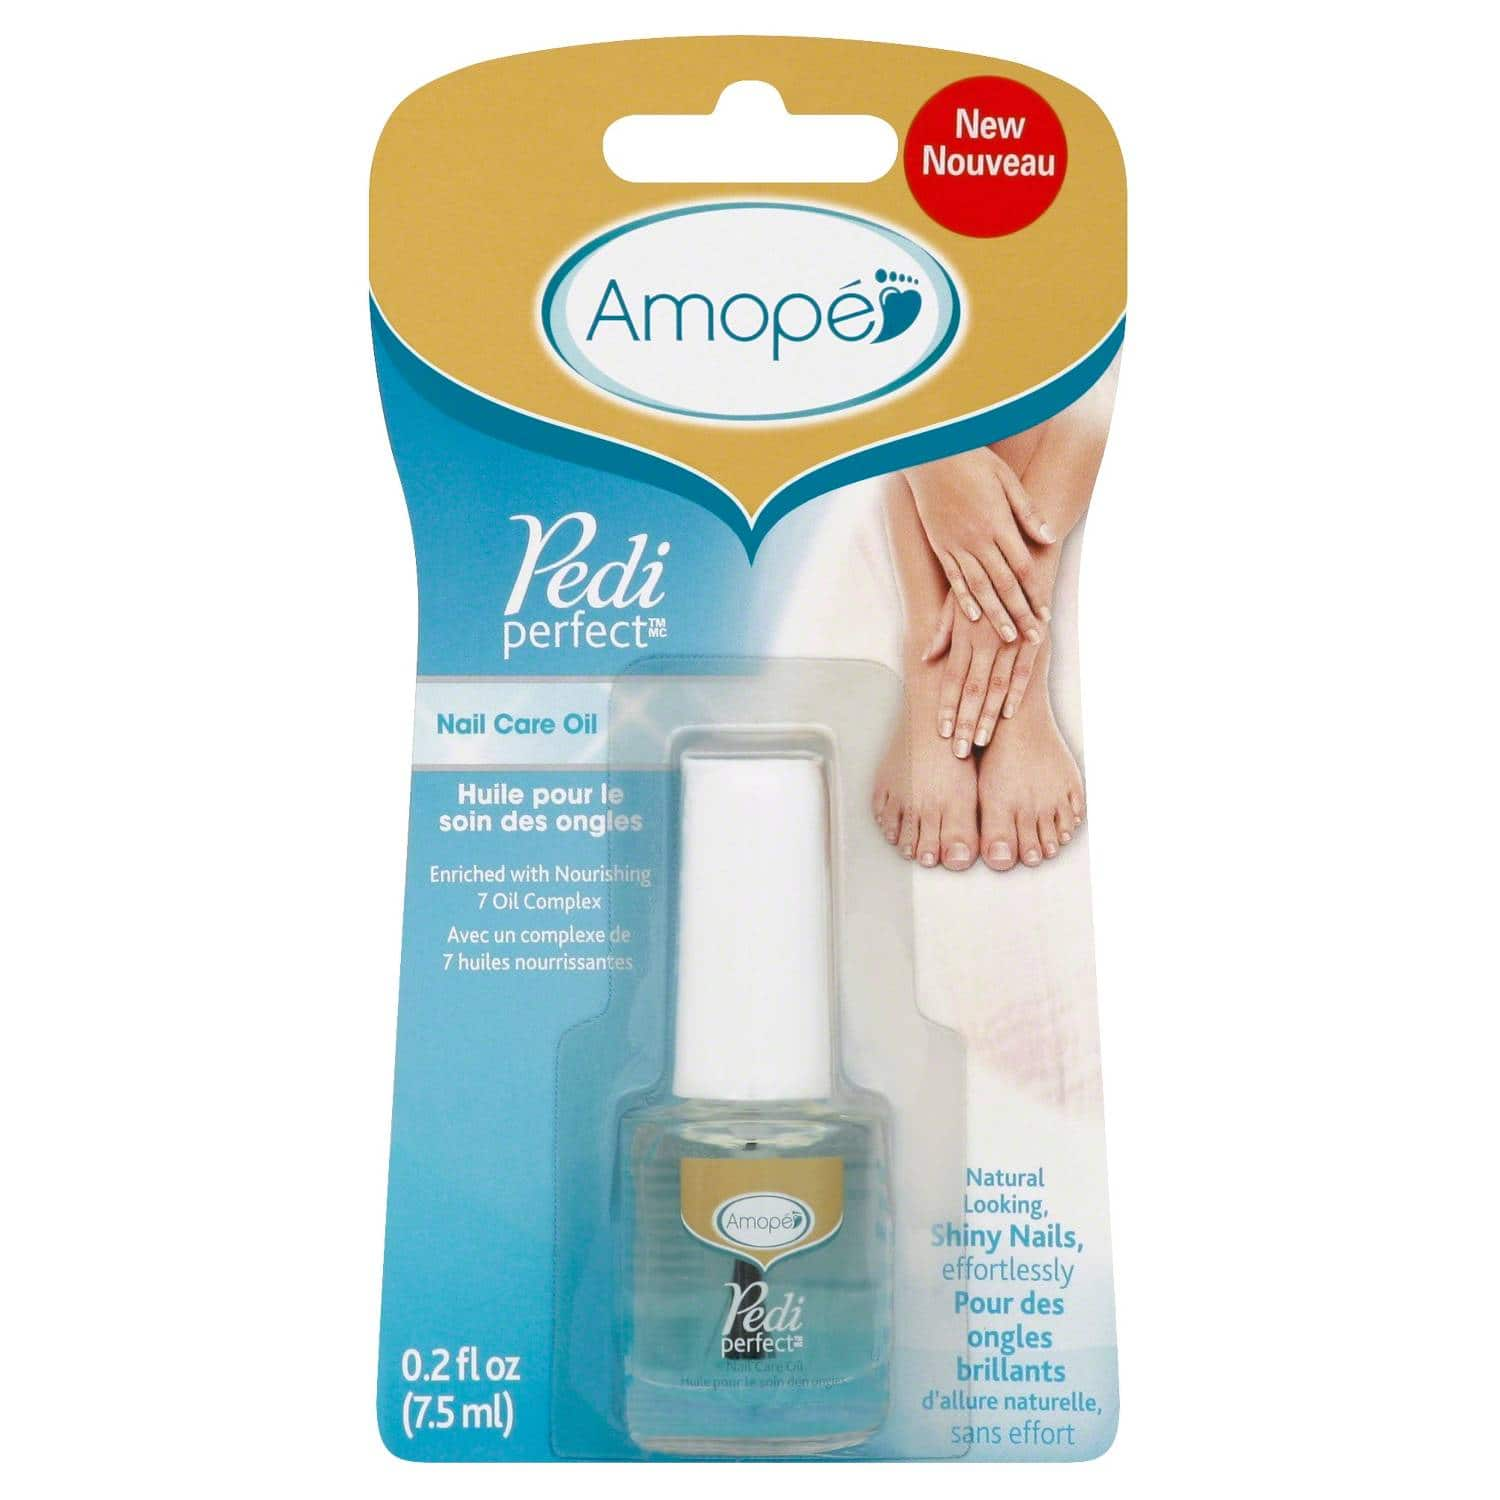 Amope Pedi Perfect Nail Oil Conditioner - 7.5 ml for $5 + free in store pick up